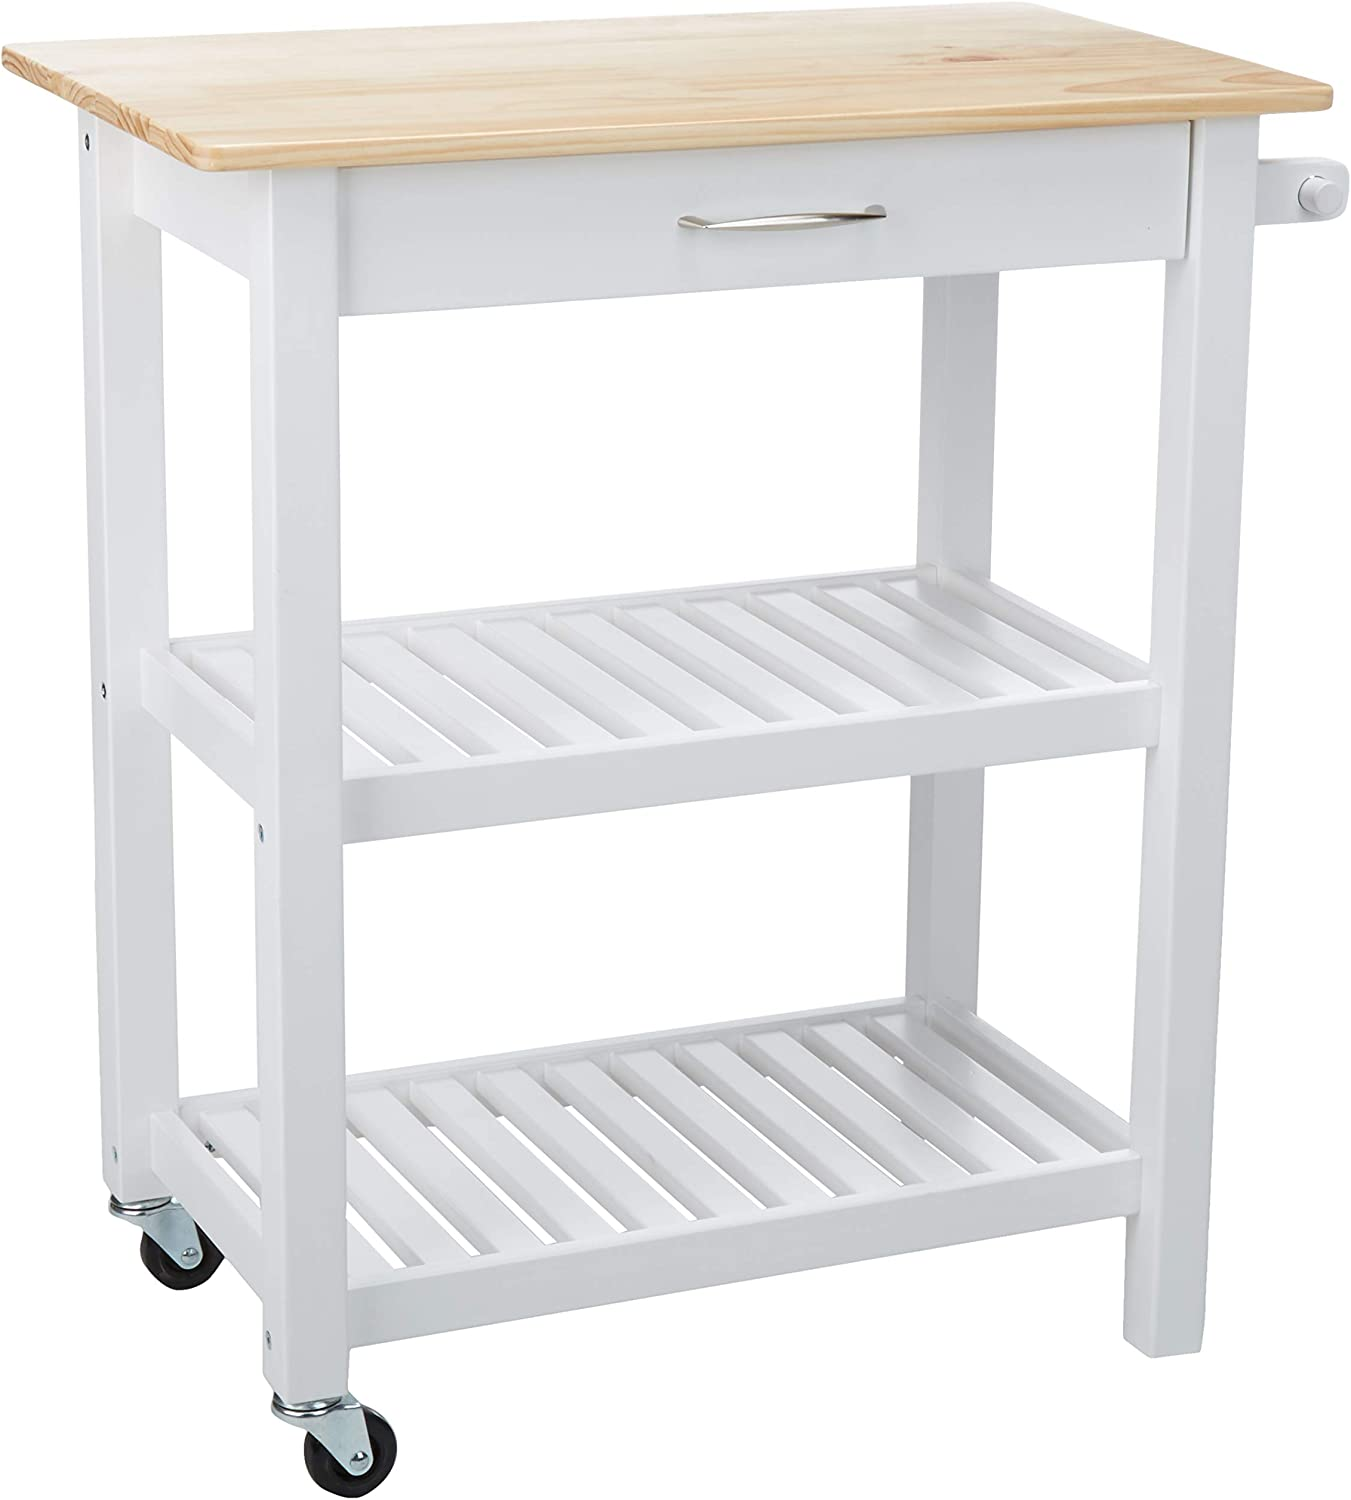 Amazon Basics Multifunction Rolling Kitchen Cart Island With Open Shelves Natural And White Furniture Decor Amazon Com